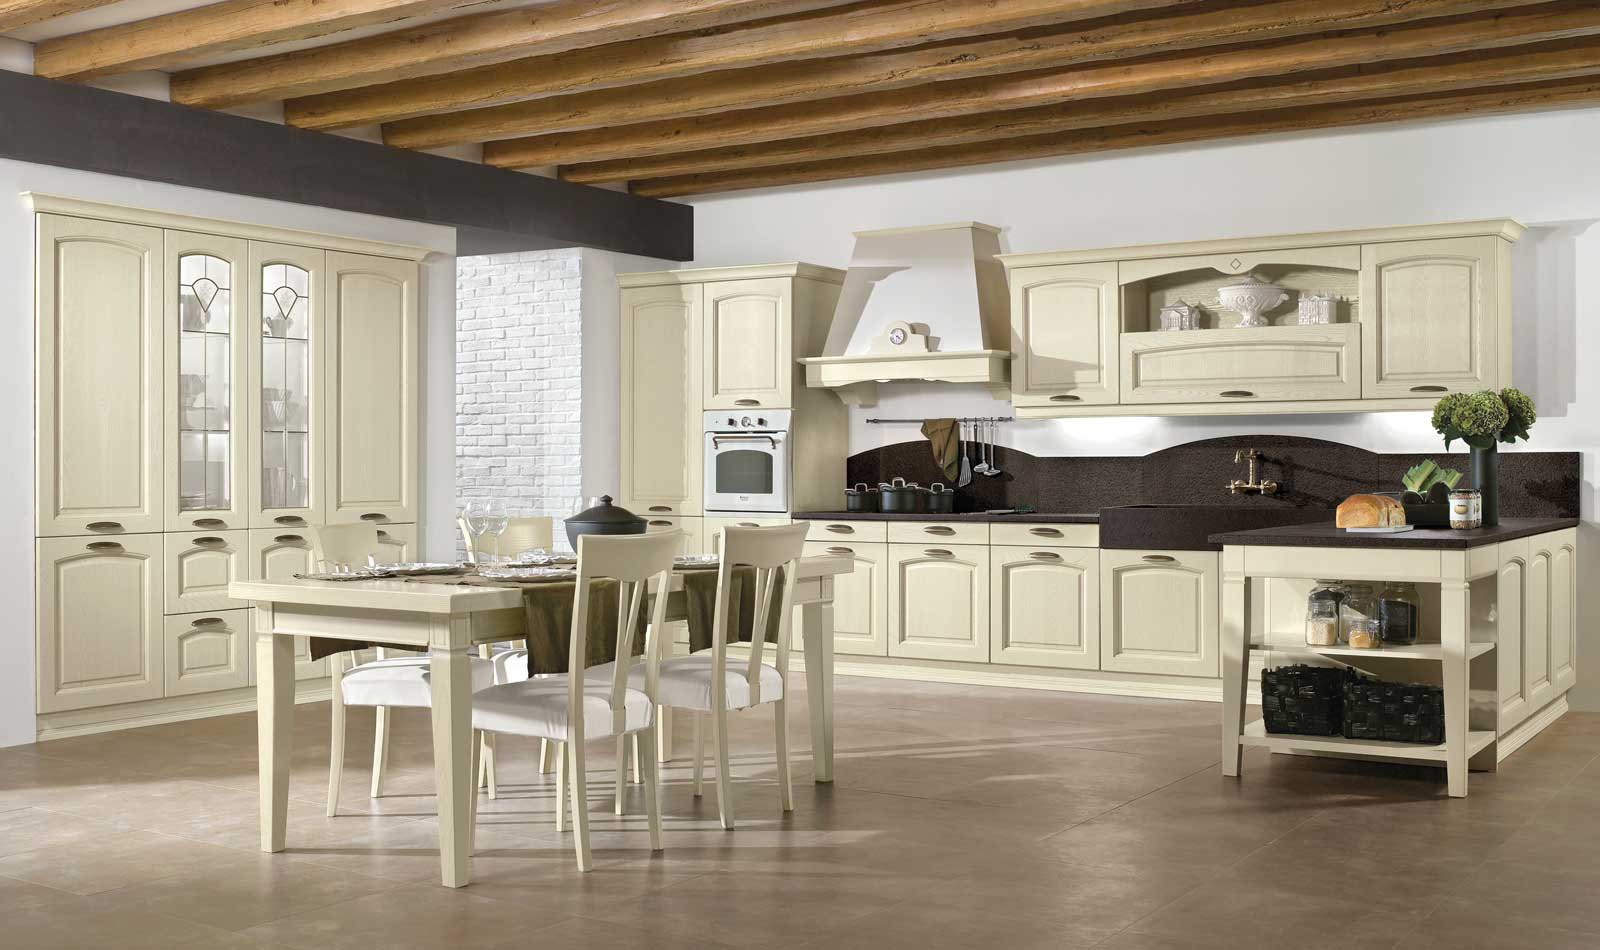 Arredo3: cucine moderne, cucine from arredo3.com  Home - french,